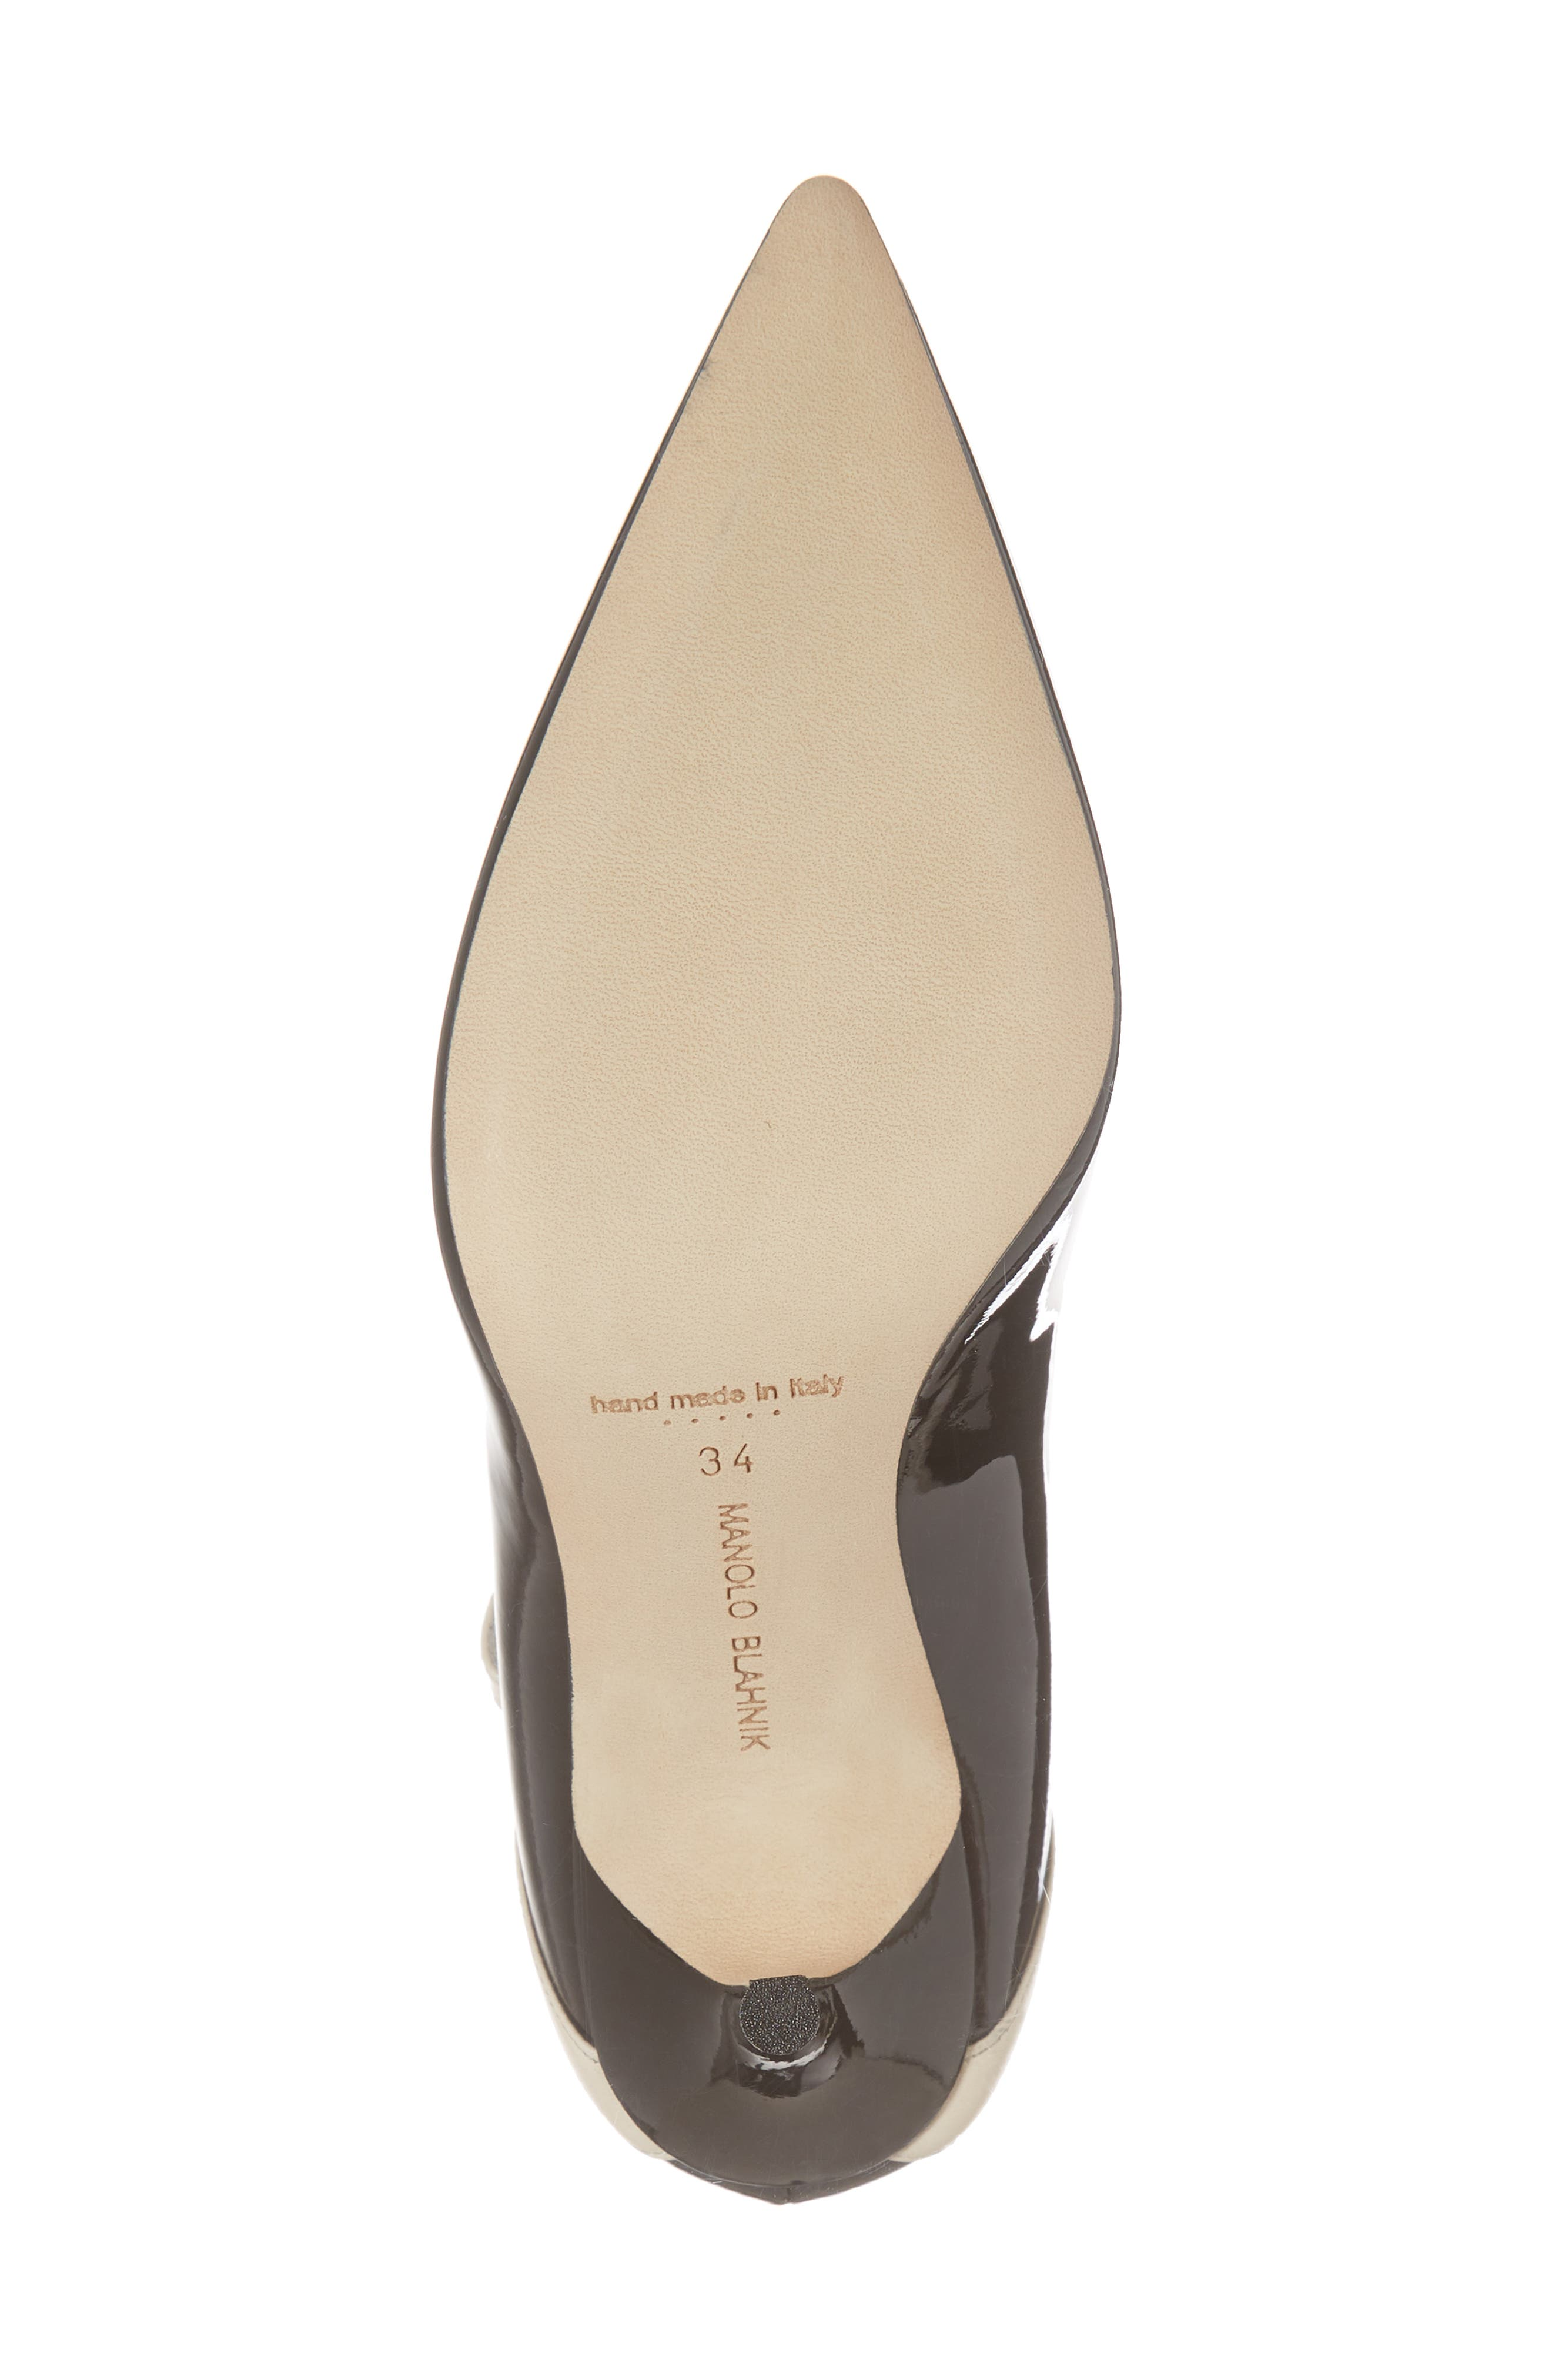 Immaculada Bow Pointy Toe Pump,                             Alternate thumbnail 6, color,                             Black/ White